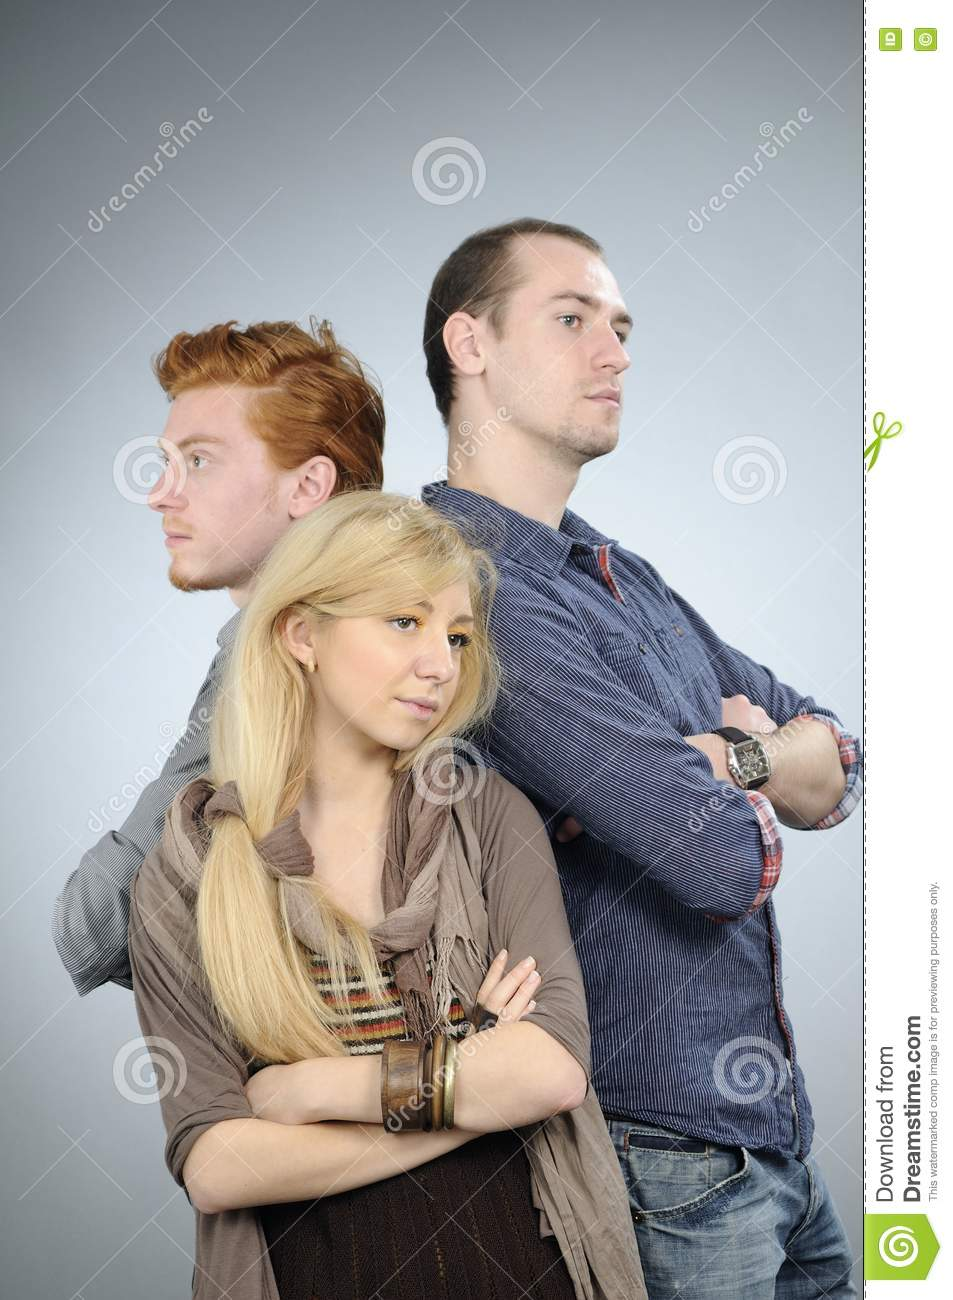 Young People Posing Royalty Free Stock Image - Image: 16649246